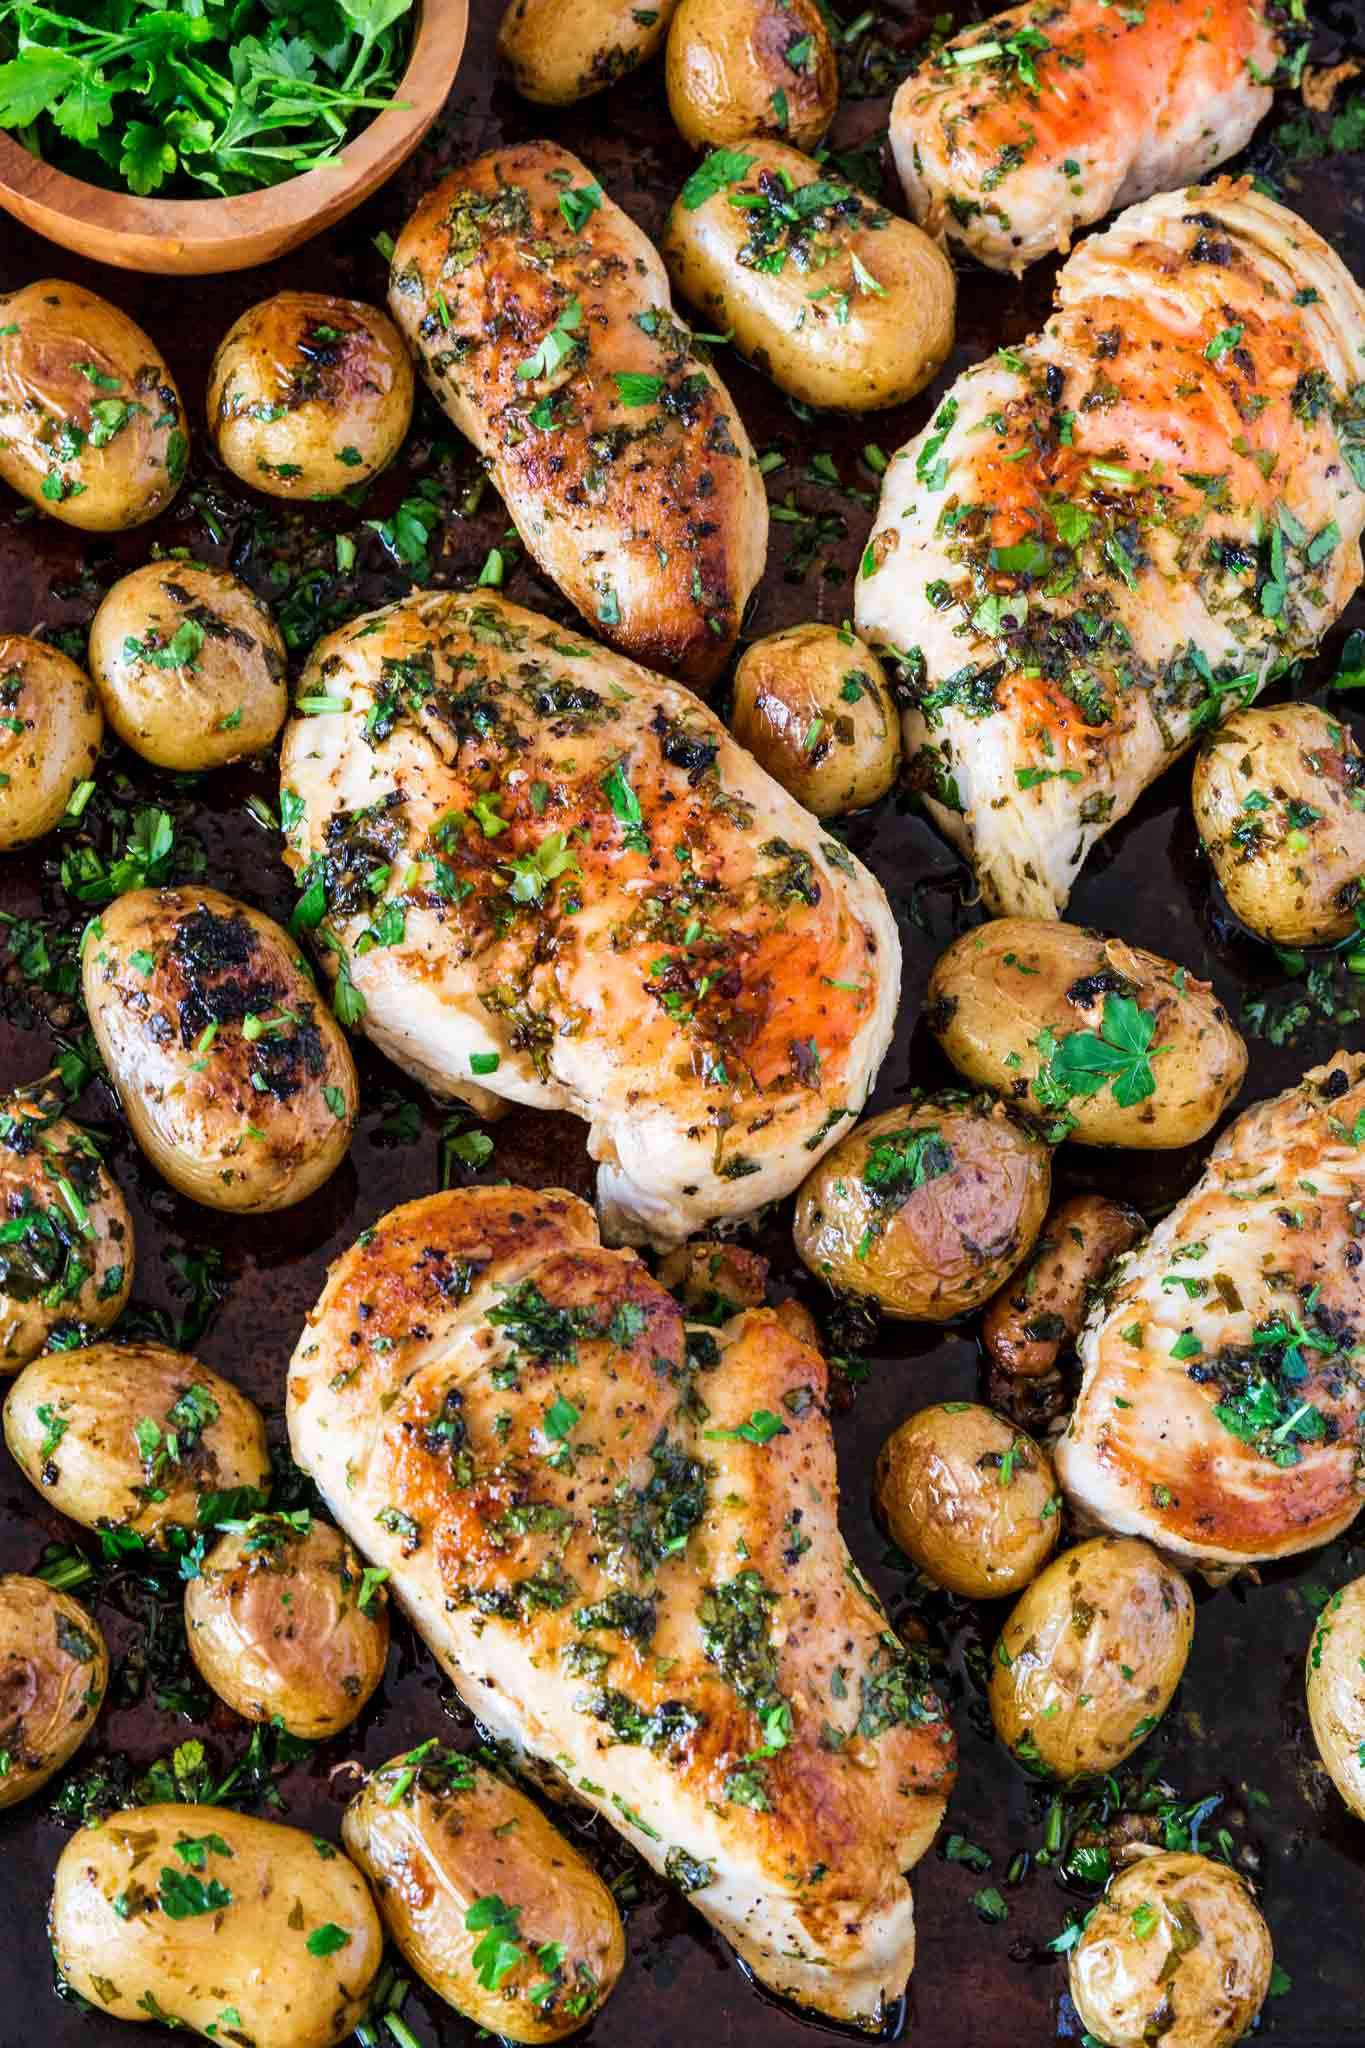 Sheet Pan Chicken with Spicy Potatoes (Batata Harra) | www.oliviascuisine.com | The easiest meal ever consists of juicy and perfectly seasoned chicken breasts served with batata harra, baked Lebanese spicy potatoes that melt in your mouth while enticing your tastebuds. (Recipe by @oliviascuisine.)